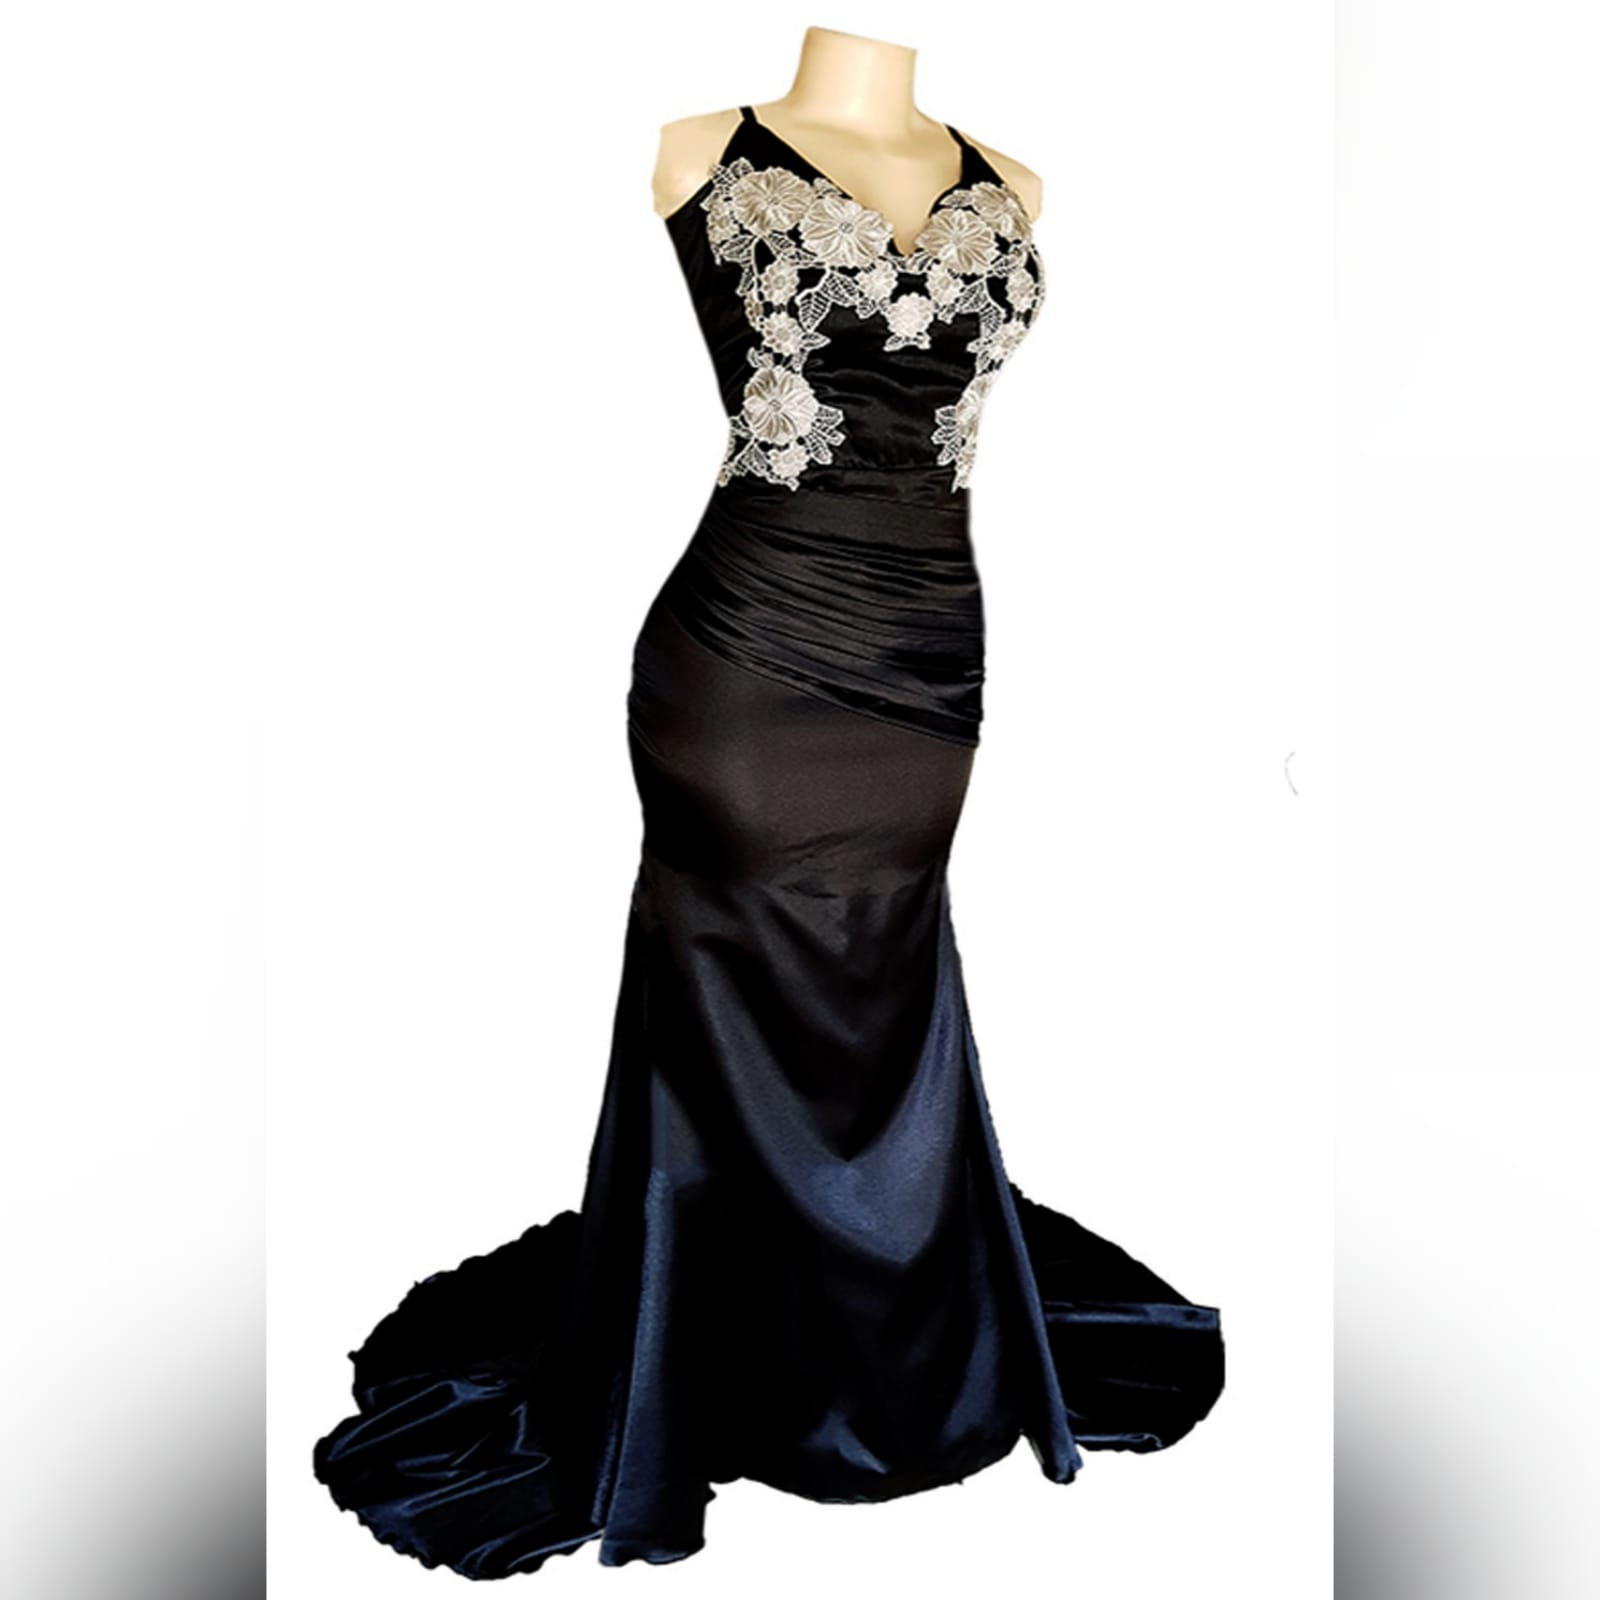 Black satin long fitted prom dress 8 a black satin long fitted prom dress with silver lace detail, will add an elegance to your special event.